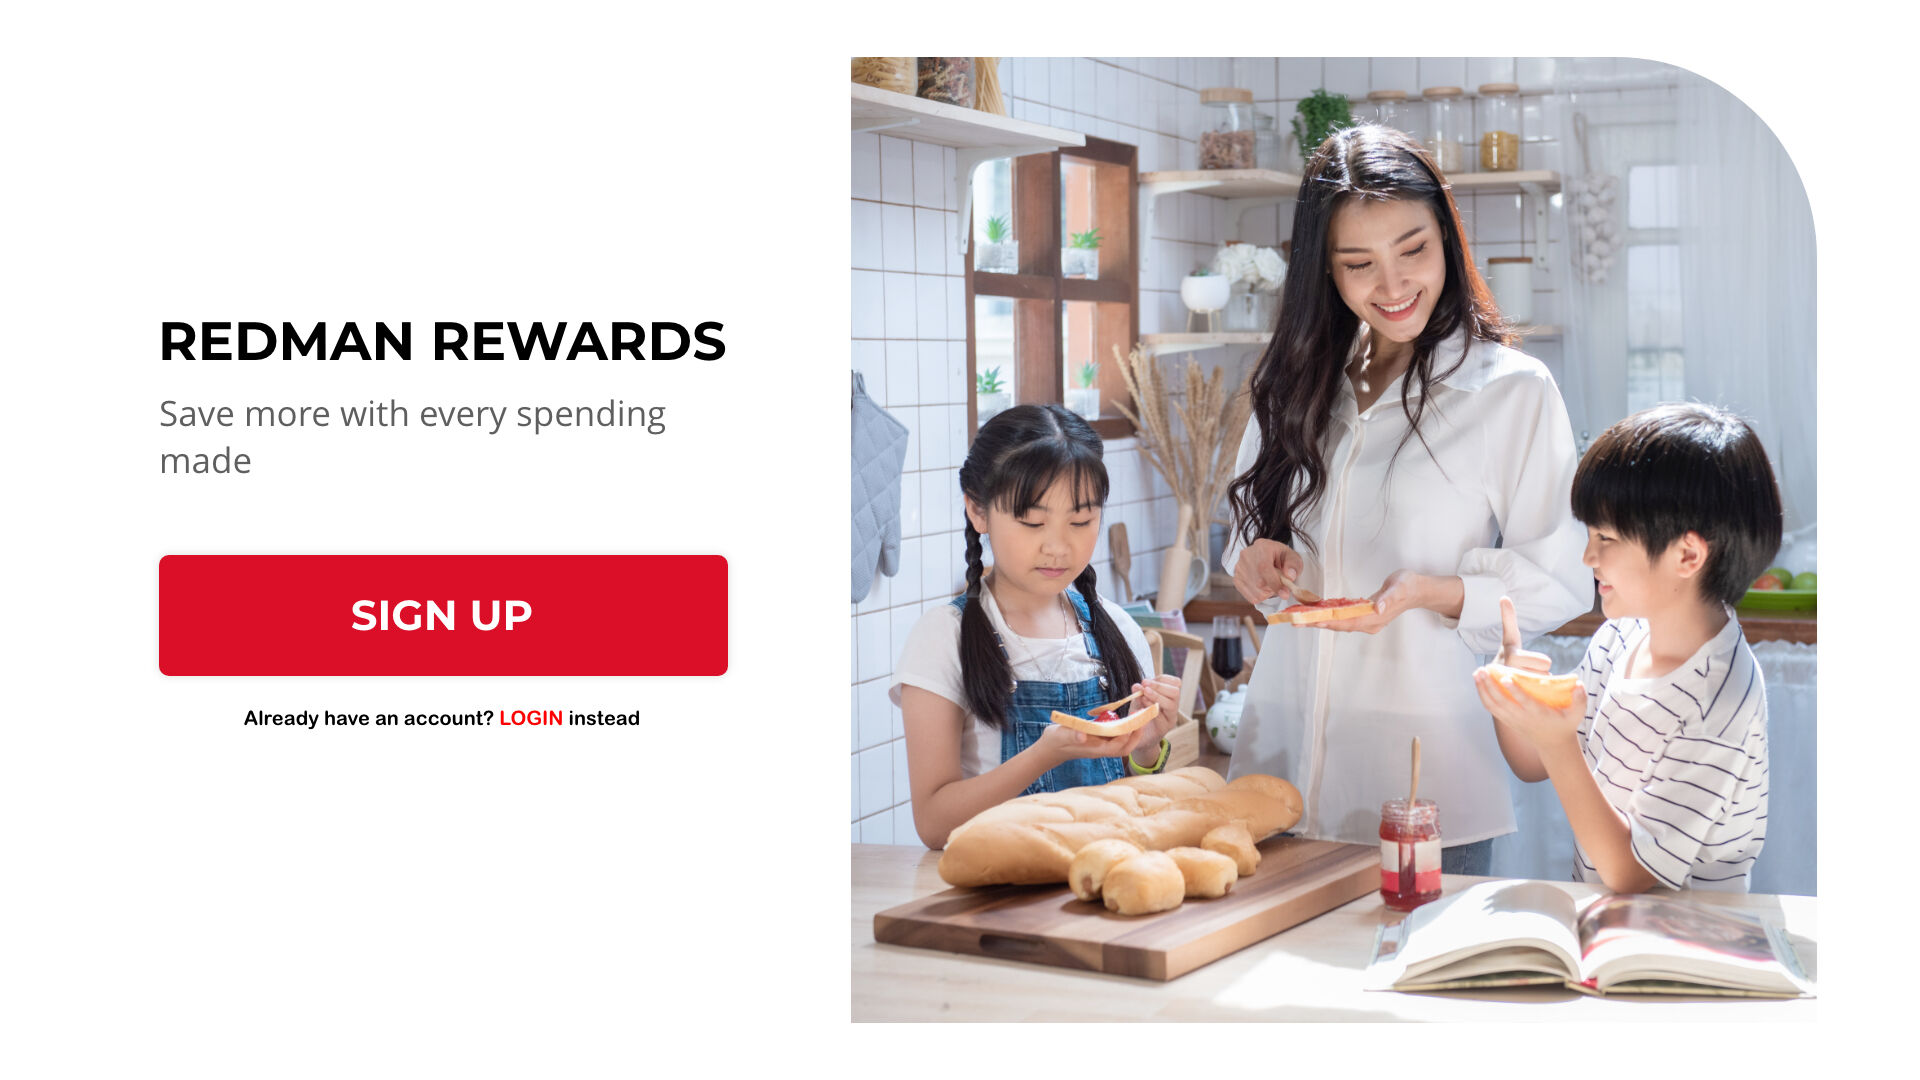 RedMan Rewards | Save more with every spending made